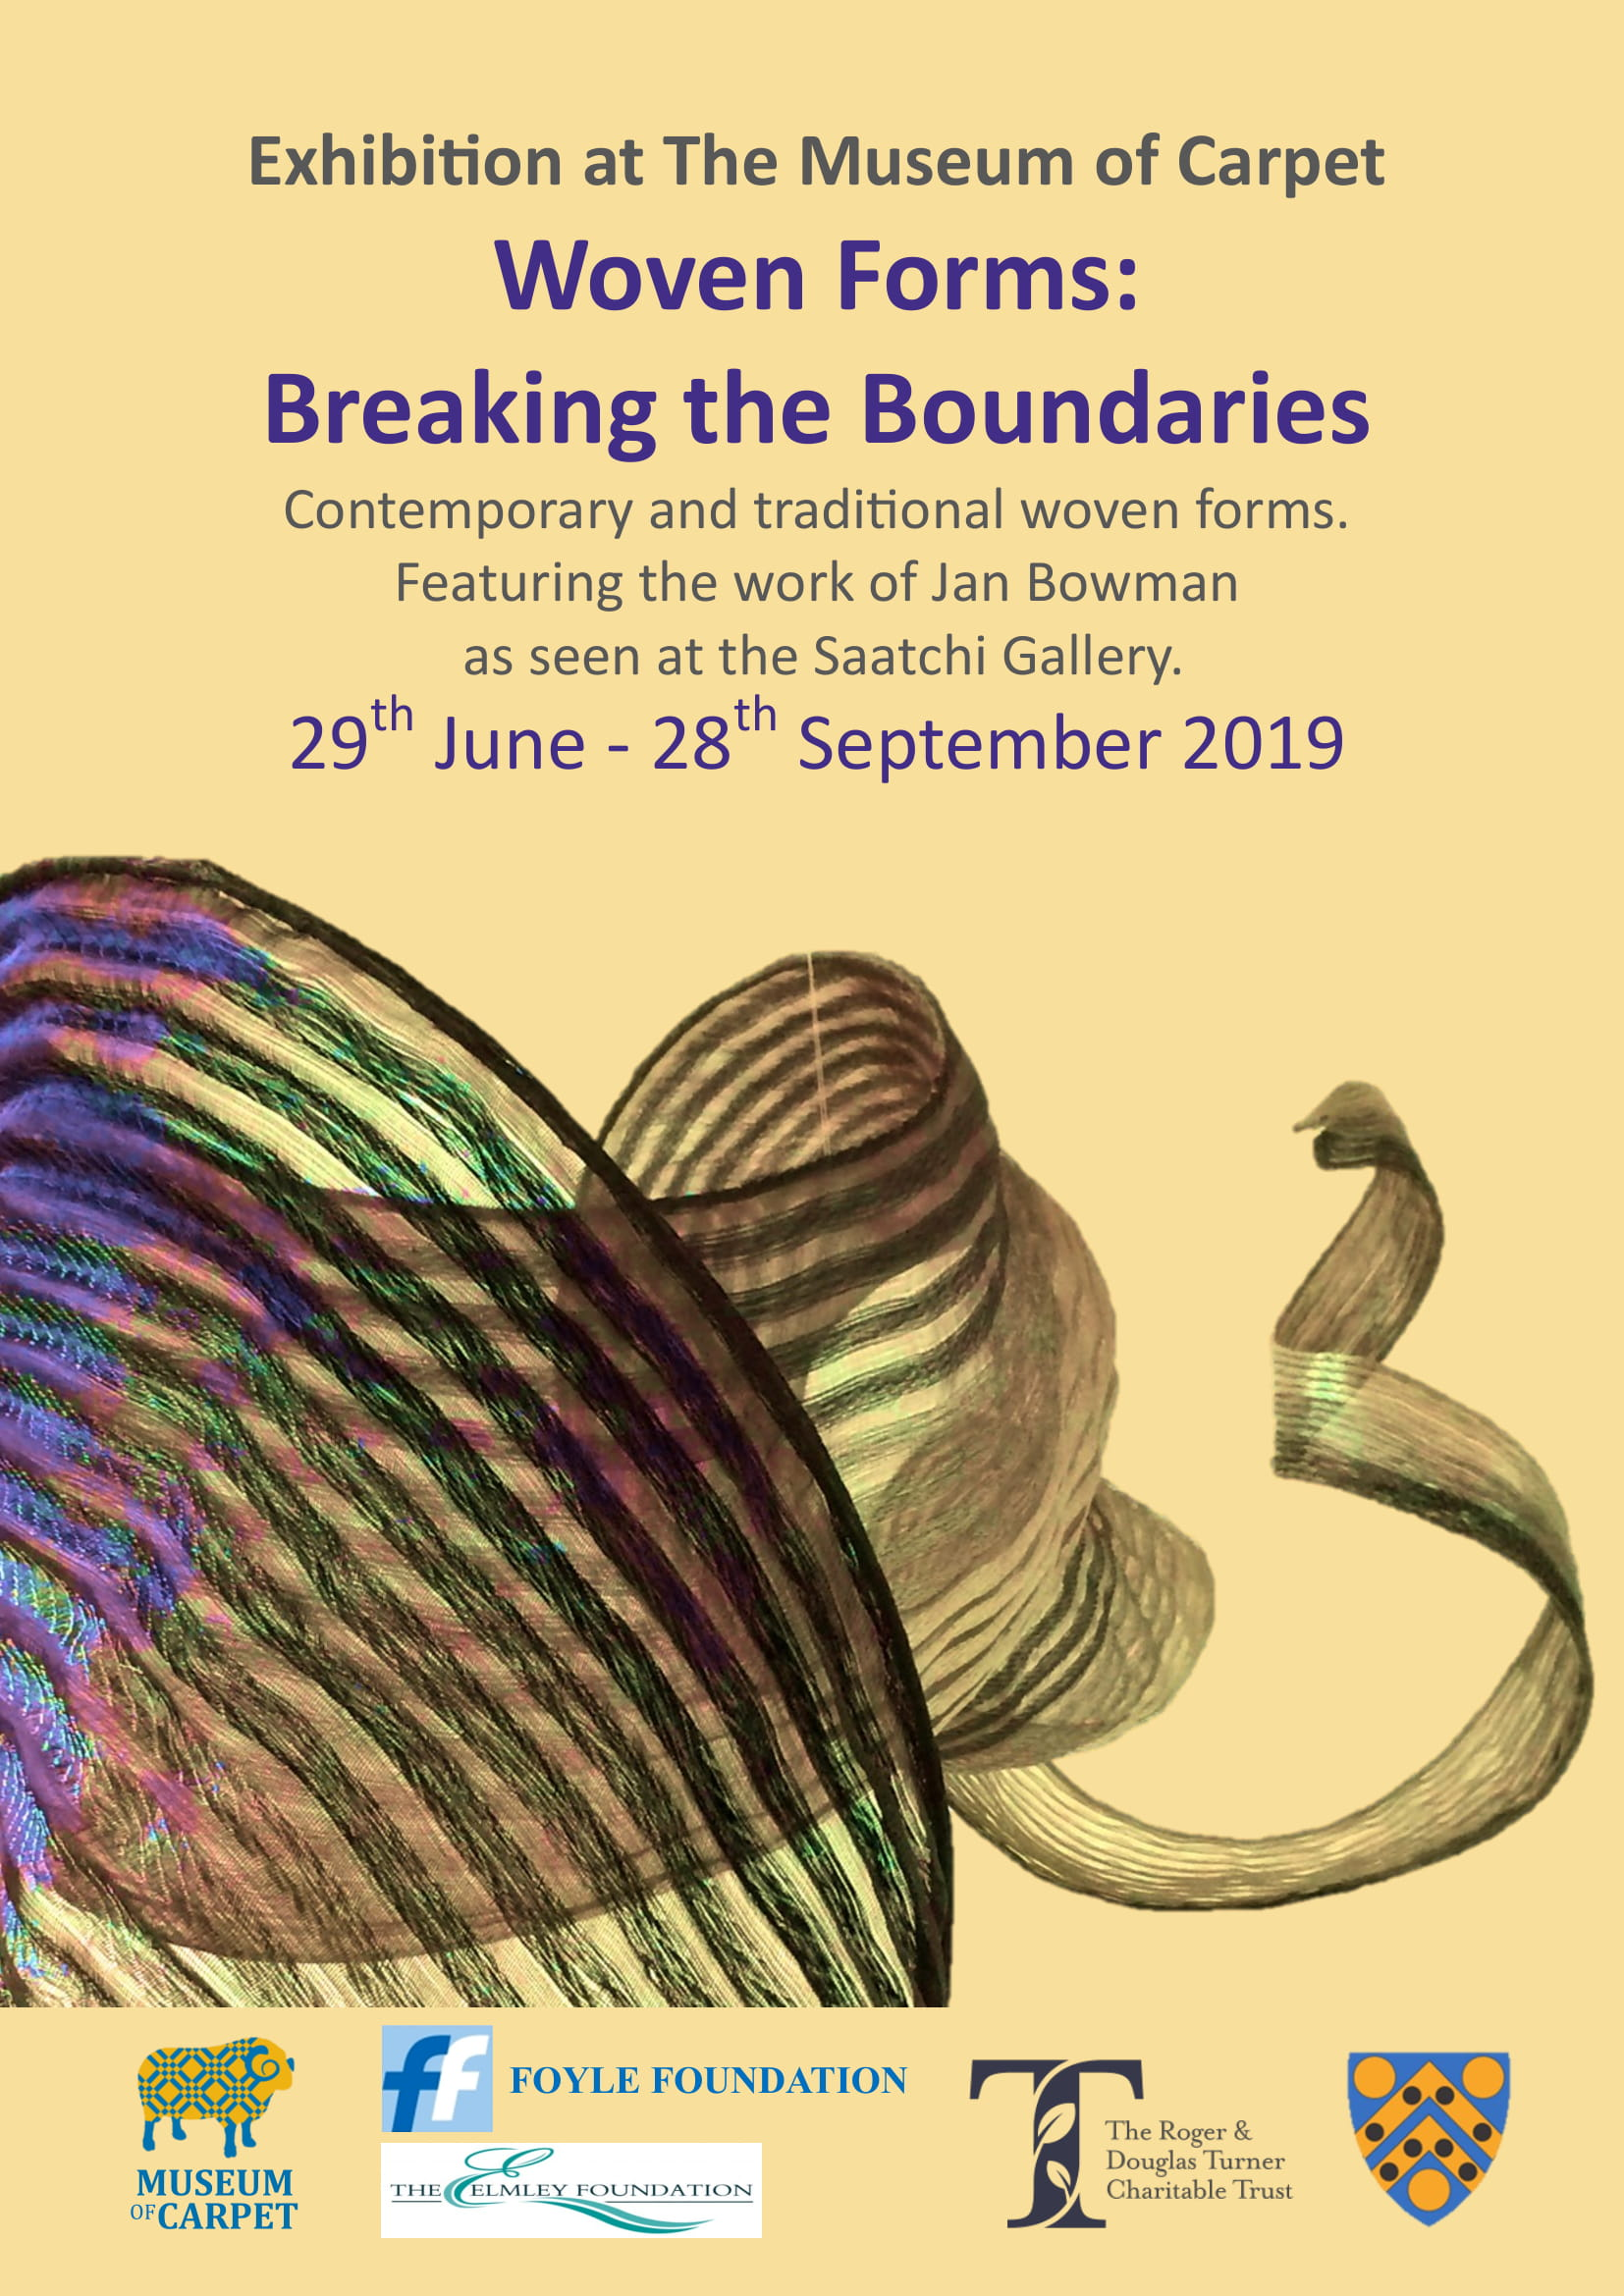 Woven Forms: Breaking the Boundaries